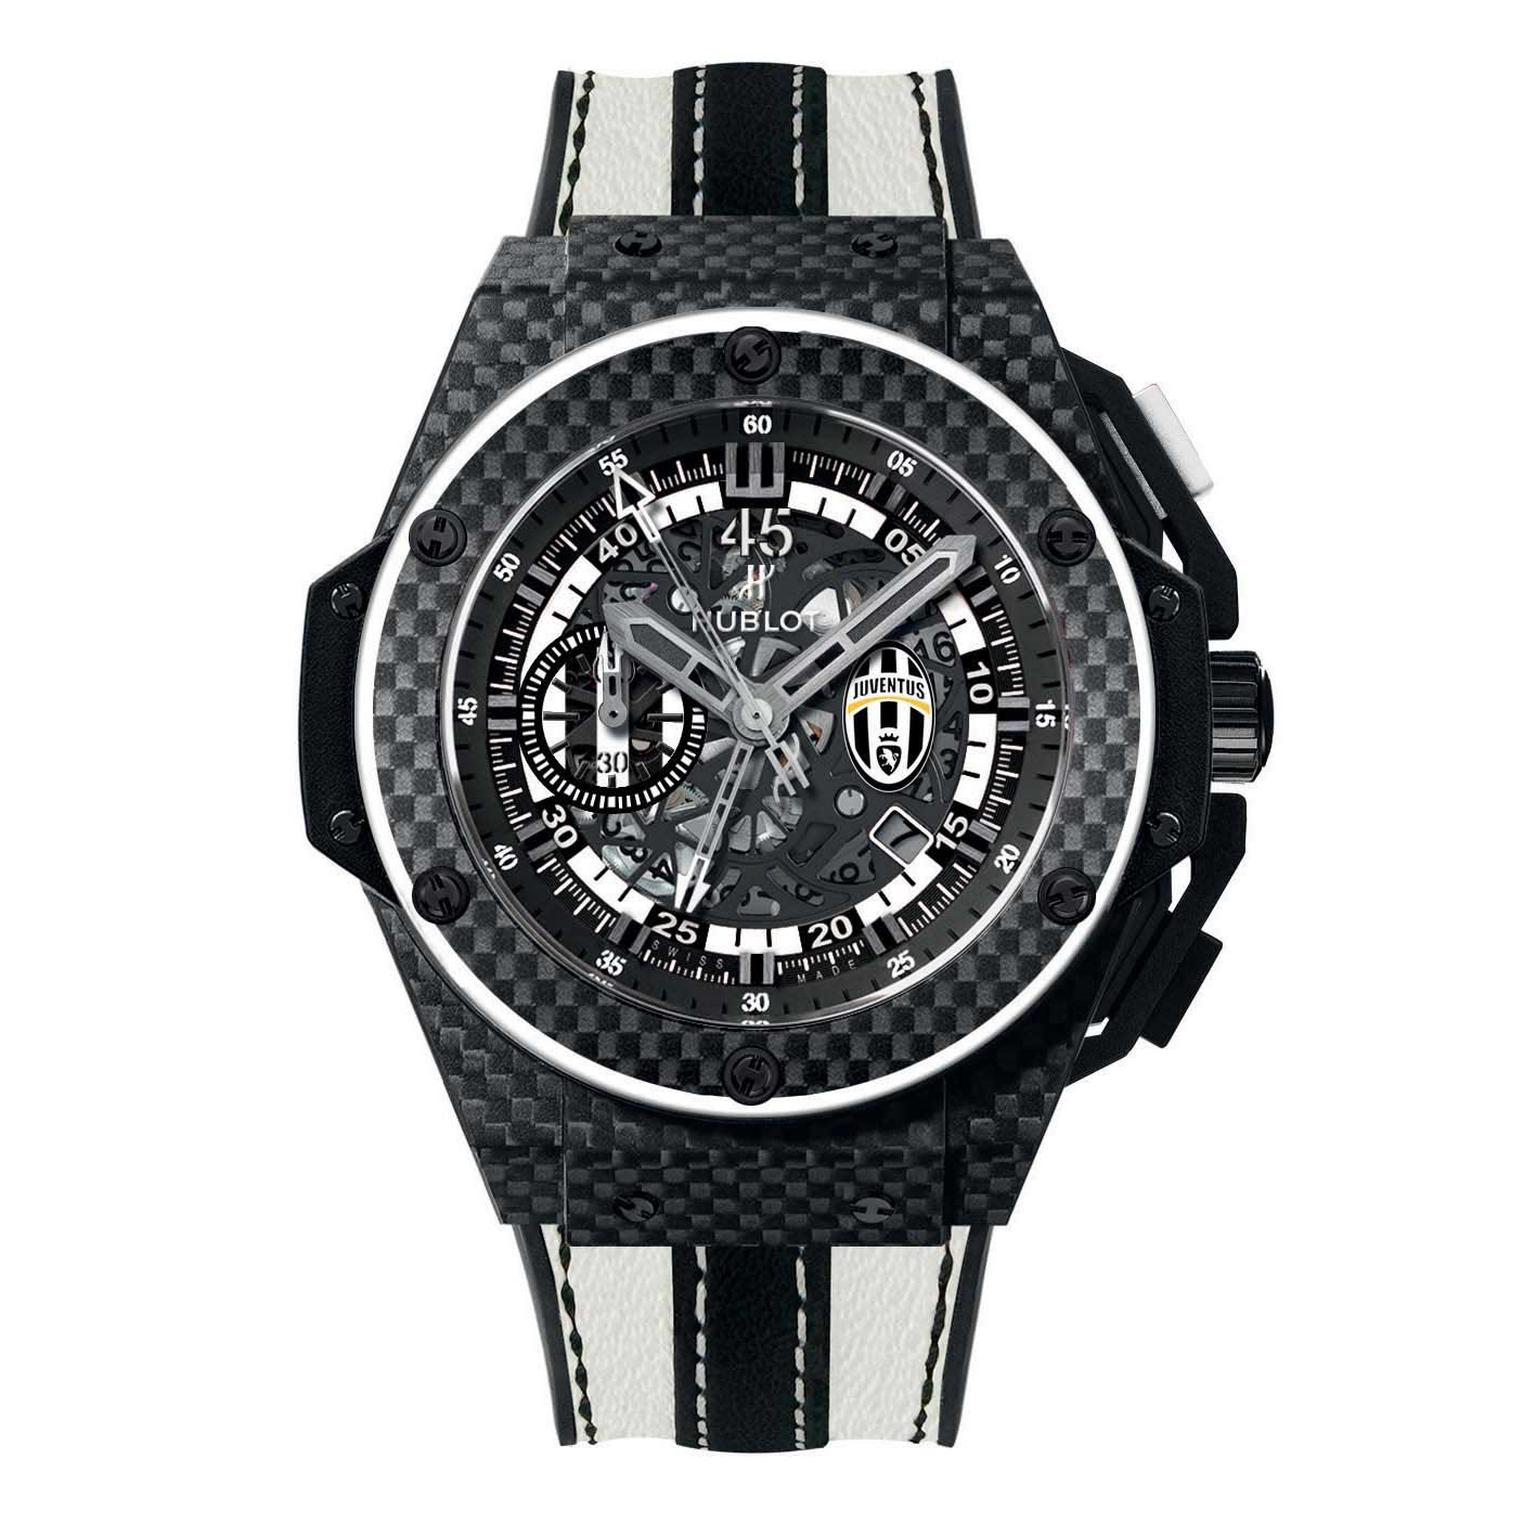 Hublot King Power Juventus chronograph